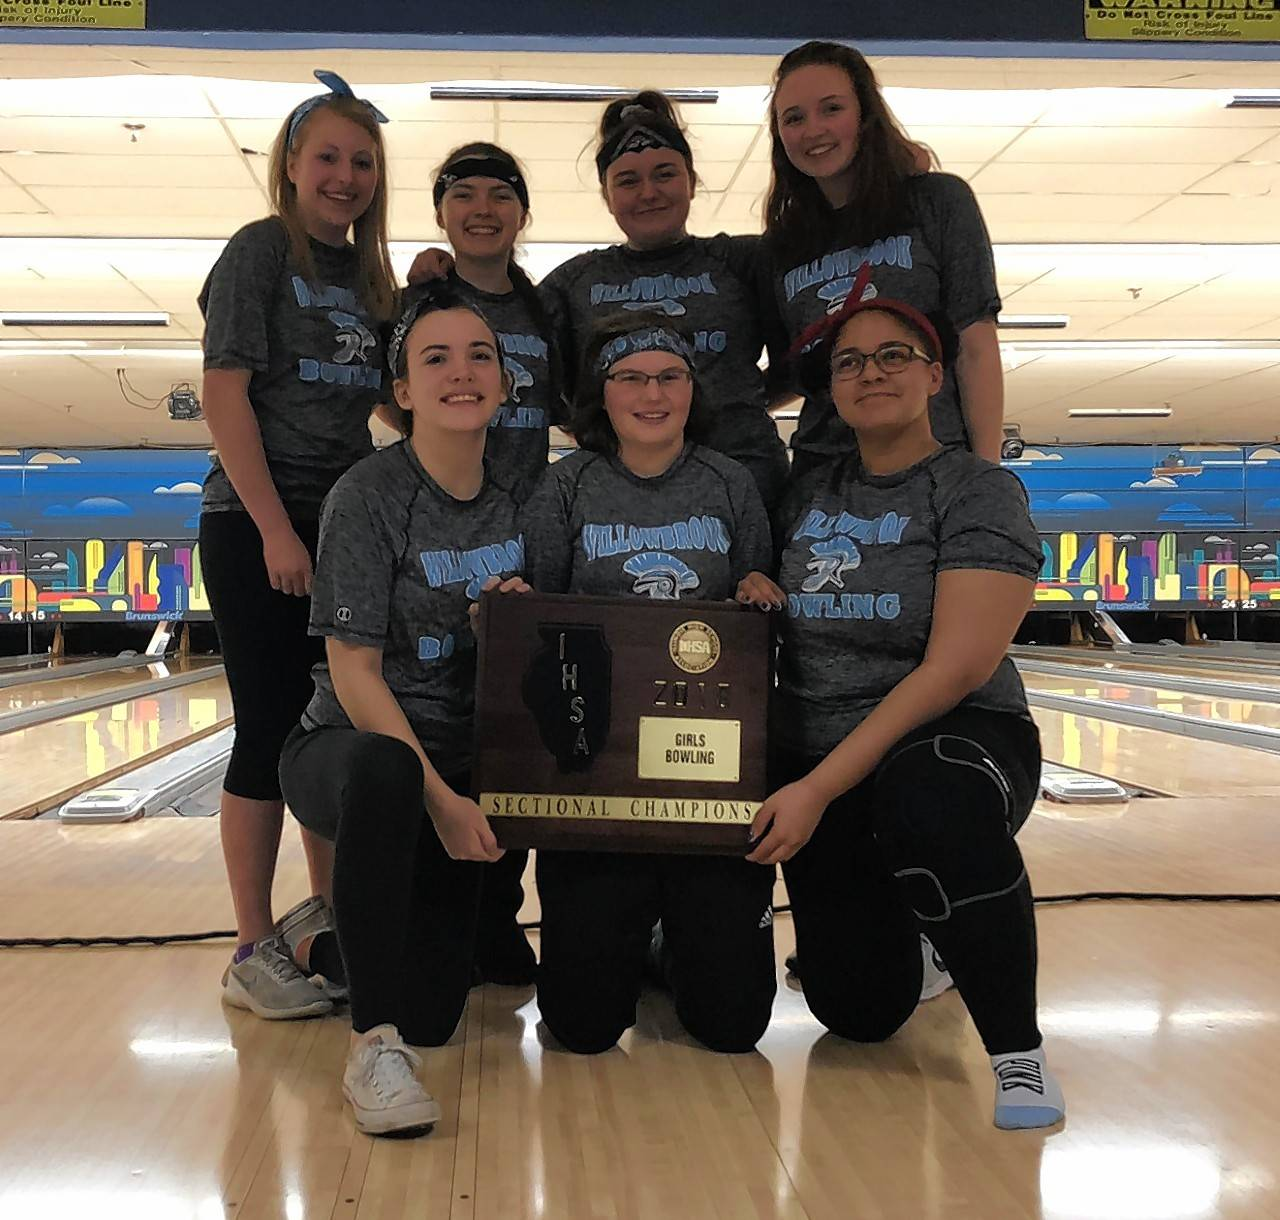 Photo courtesy of Willowbrook High School Willowbrook bowlers are pictured with their sectional plaque. Front left to right Betsy Soriano, Dana Sasenick, Makaylah Jones. Back left to right Holly Helsper, Katie Pettinger, Brianna Bryant, Paula Williams.